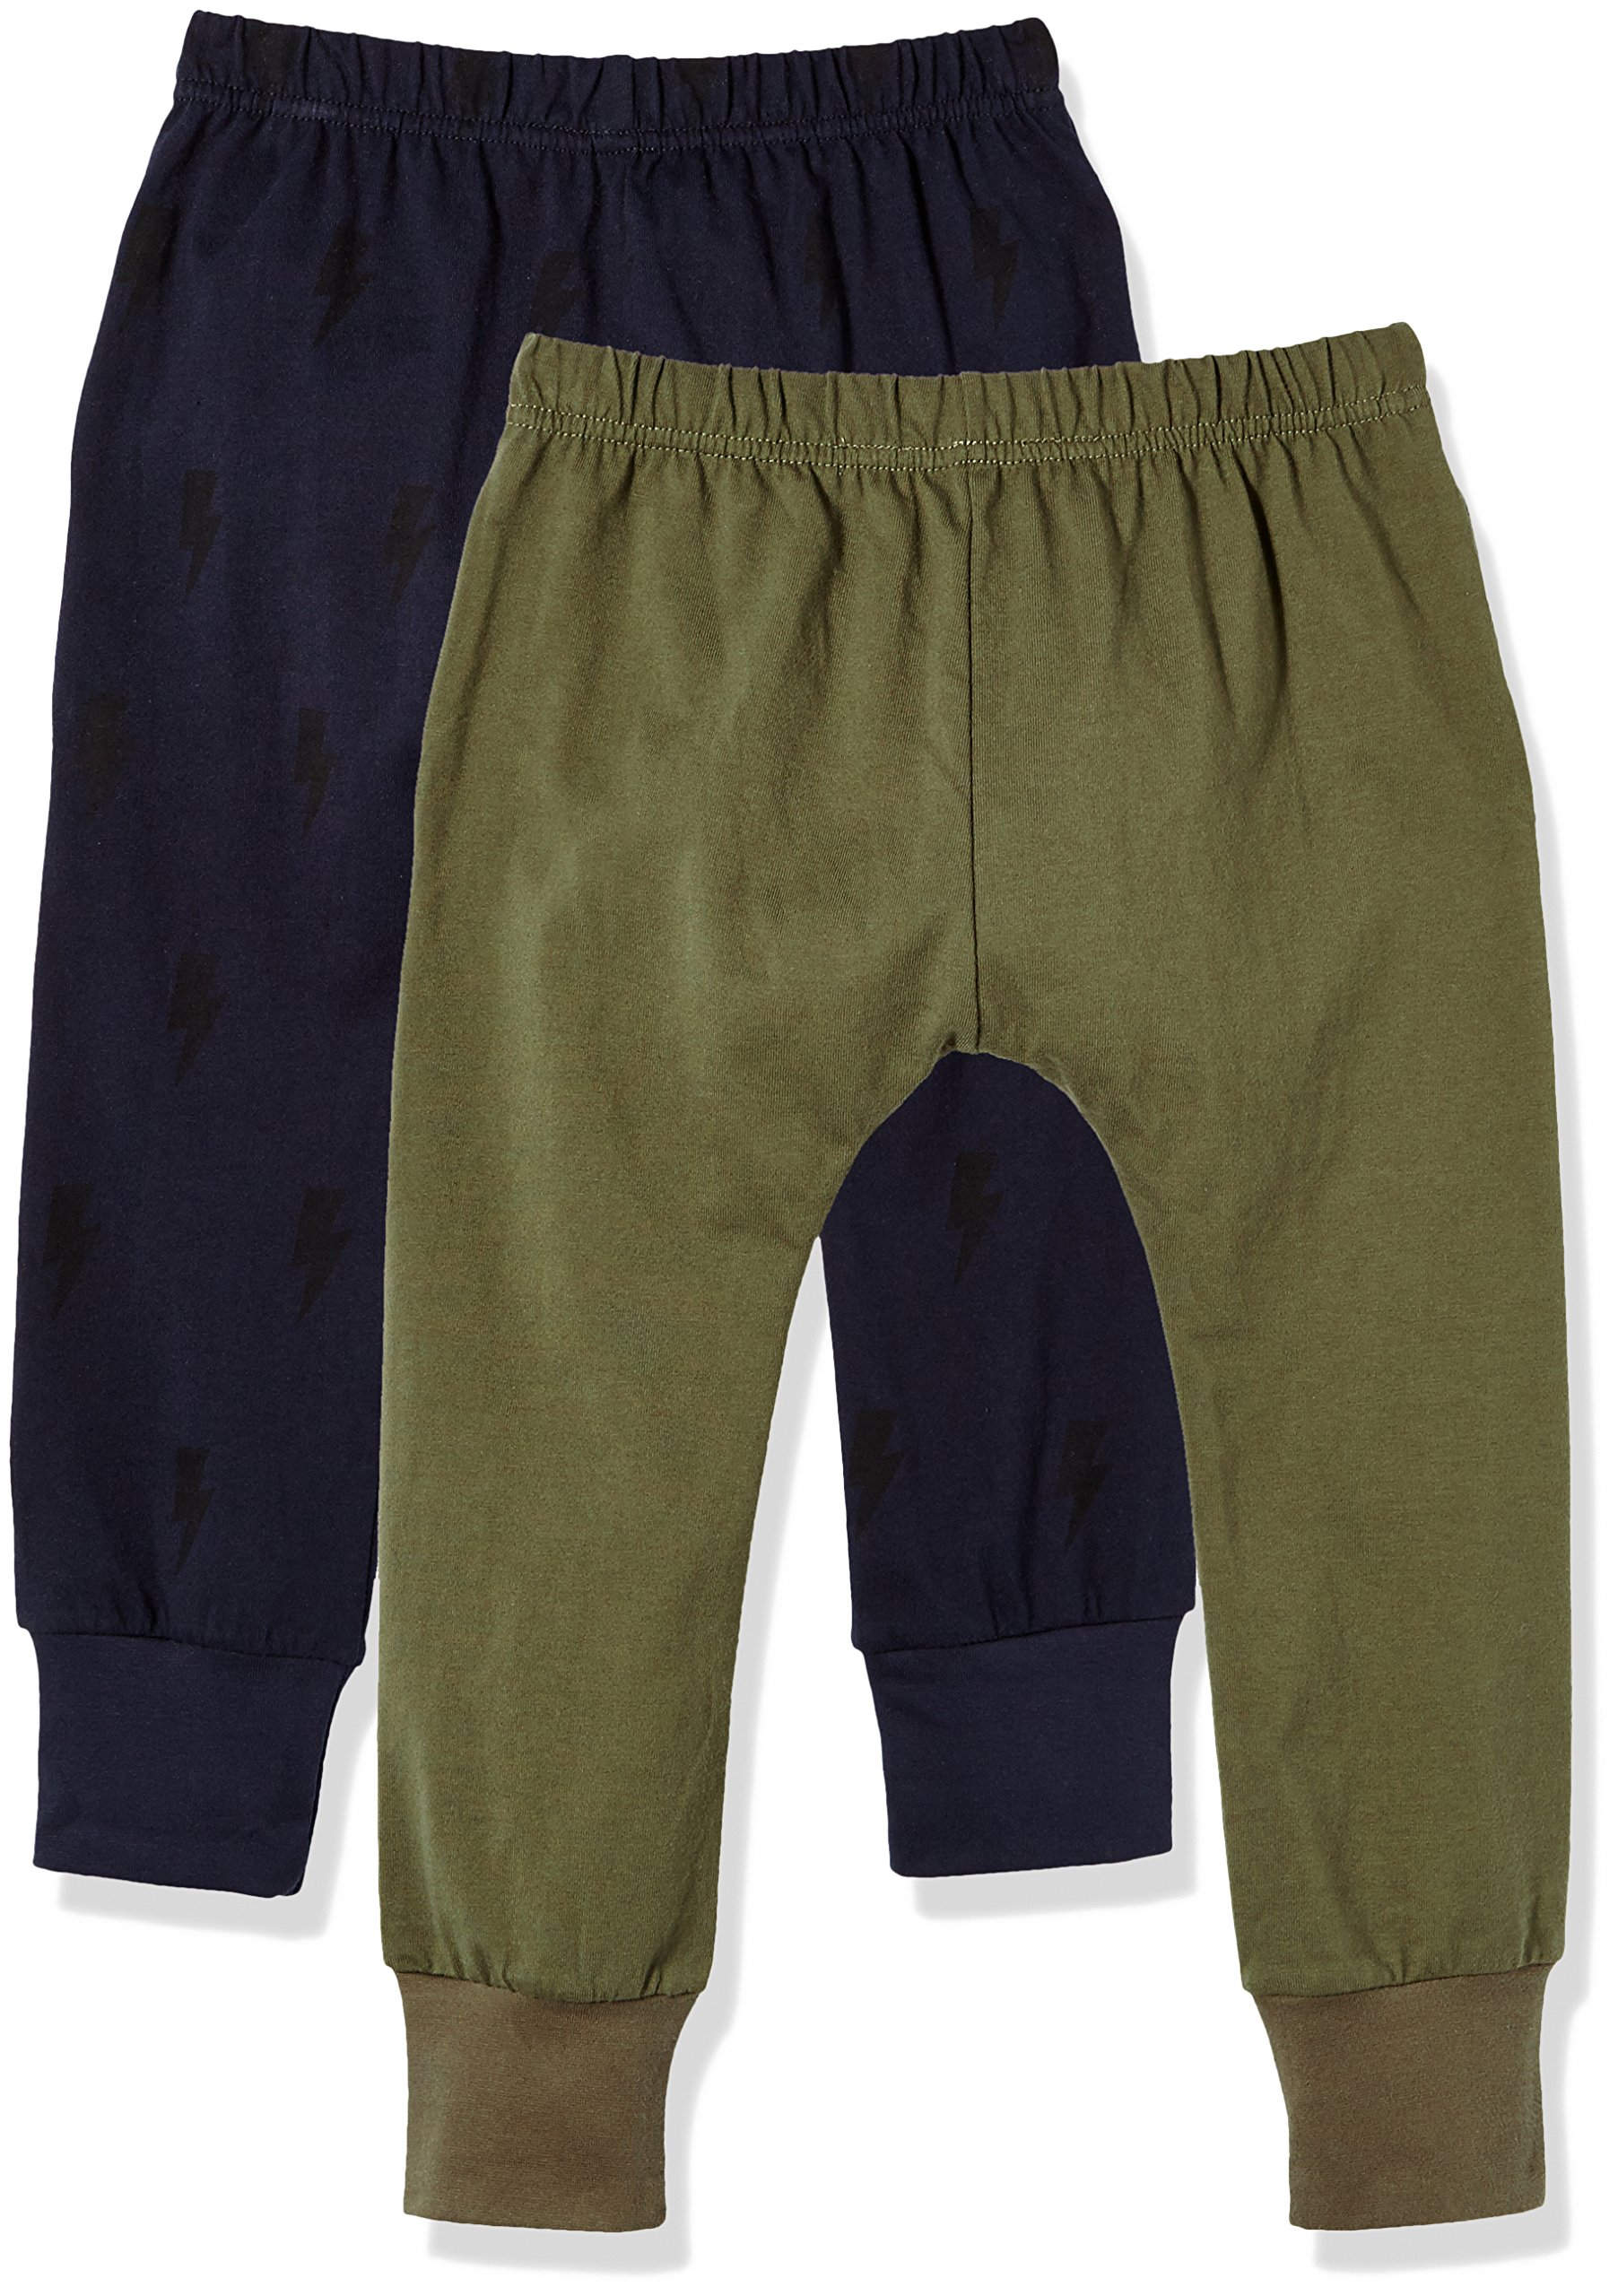 Kid Nation Kids' 2 Pack Cotton Beach Pant for Boys or Girls XS Olive + Grey Blue by Kid Nation (Image #2)